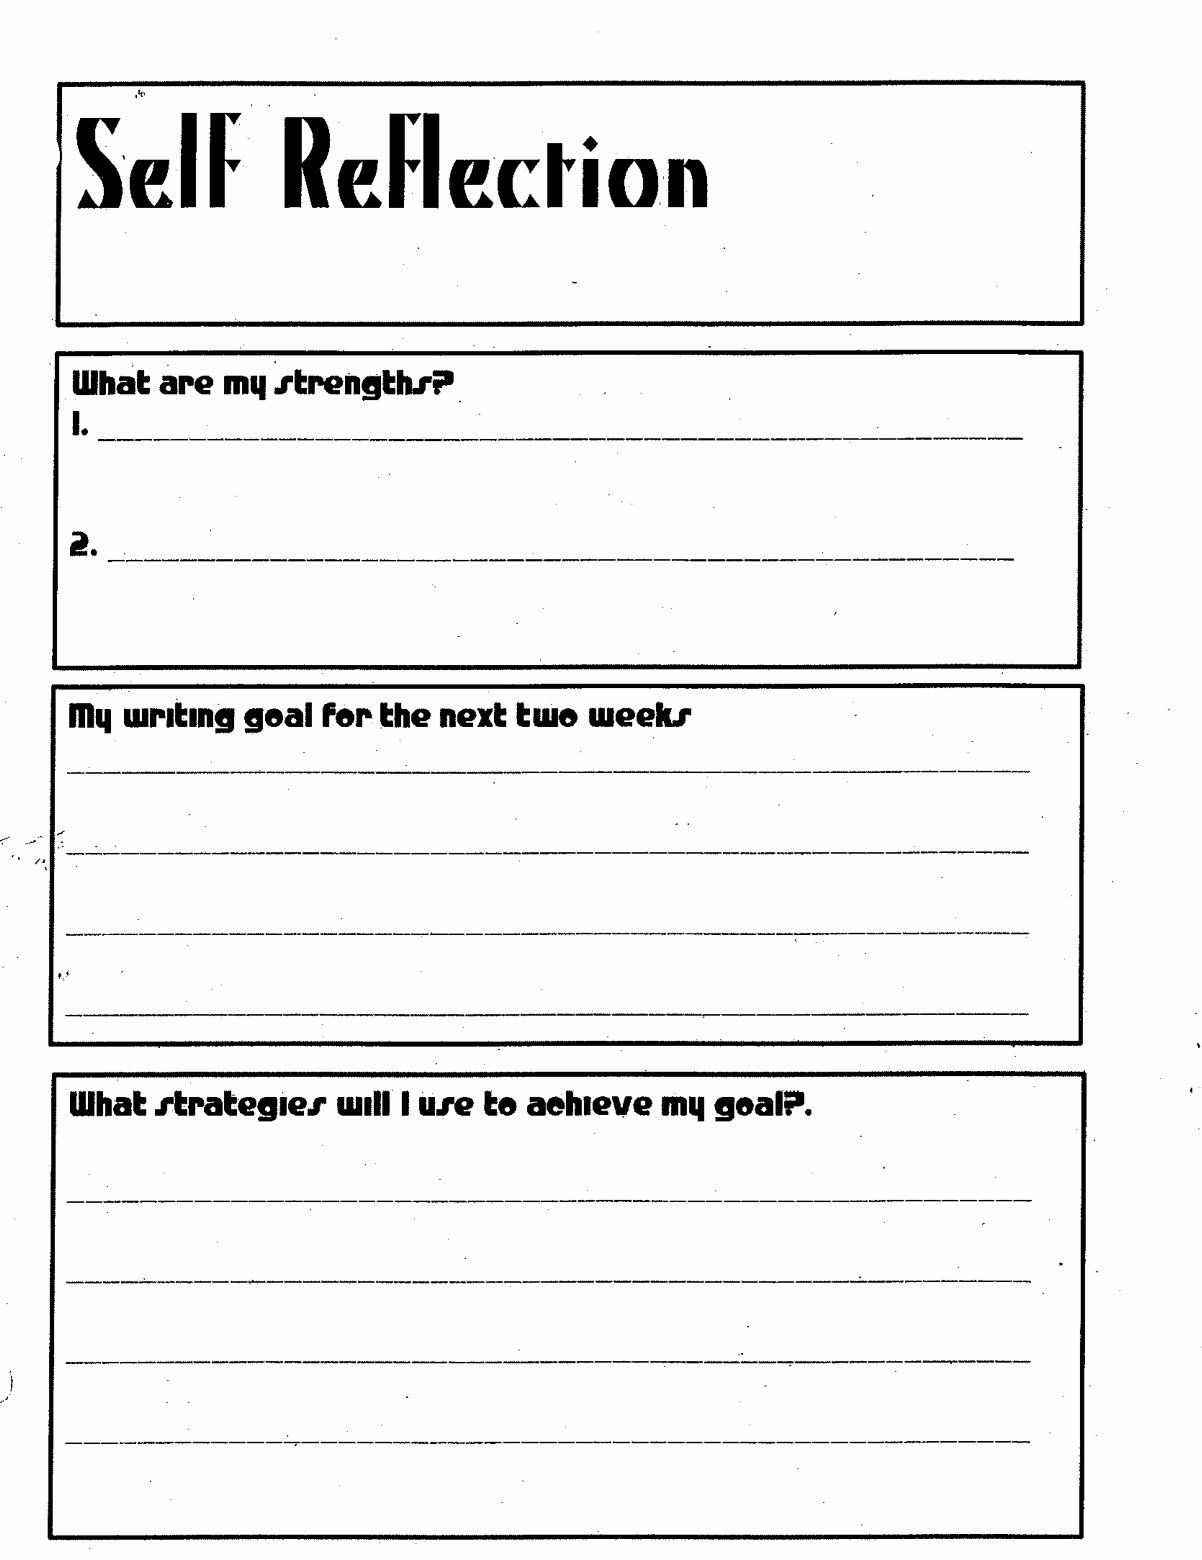 Self Reflection Worksheet For Students Elegant Diversity Dish Self Reflection Before And Aft Writing Units Middle School Math Worksheets Reflection Activities [ 1560 x 1202 Pixel ]